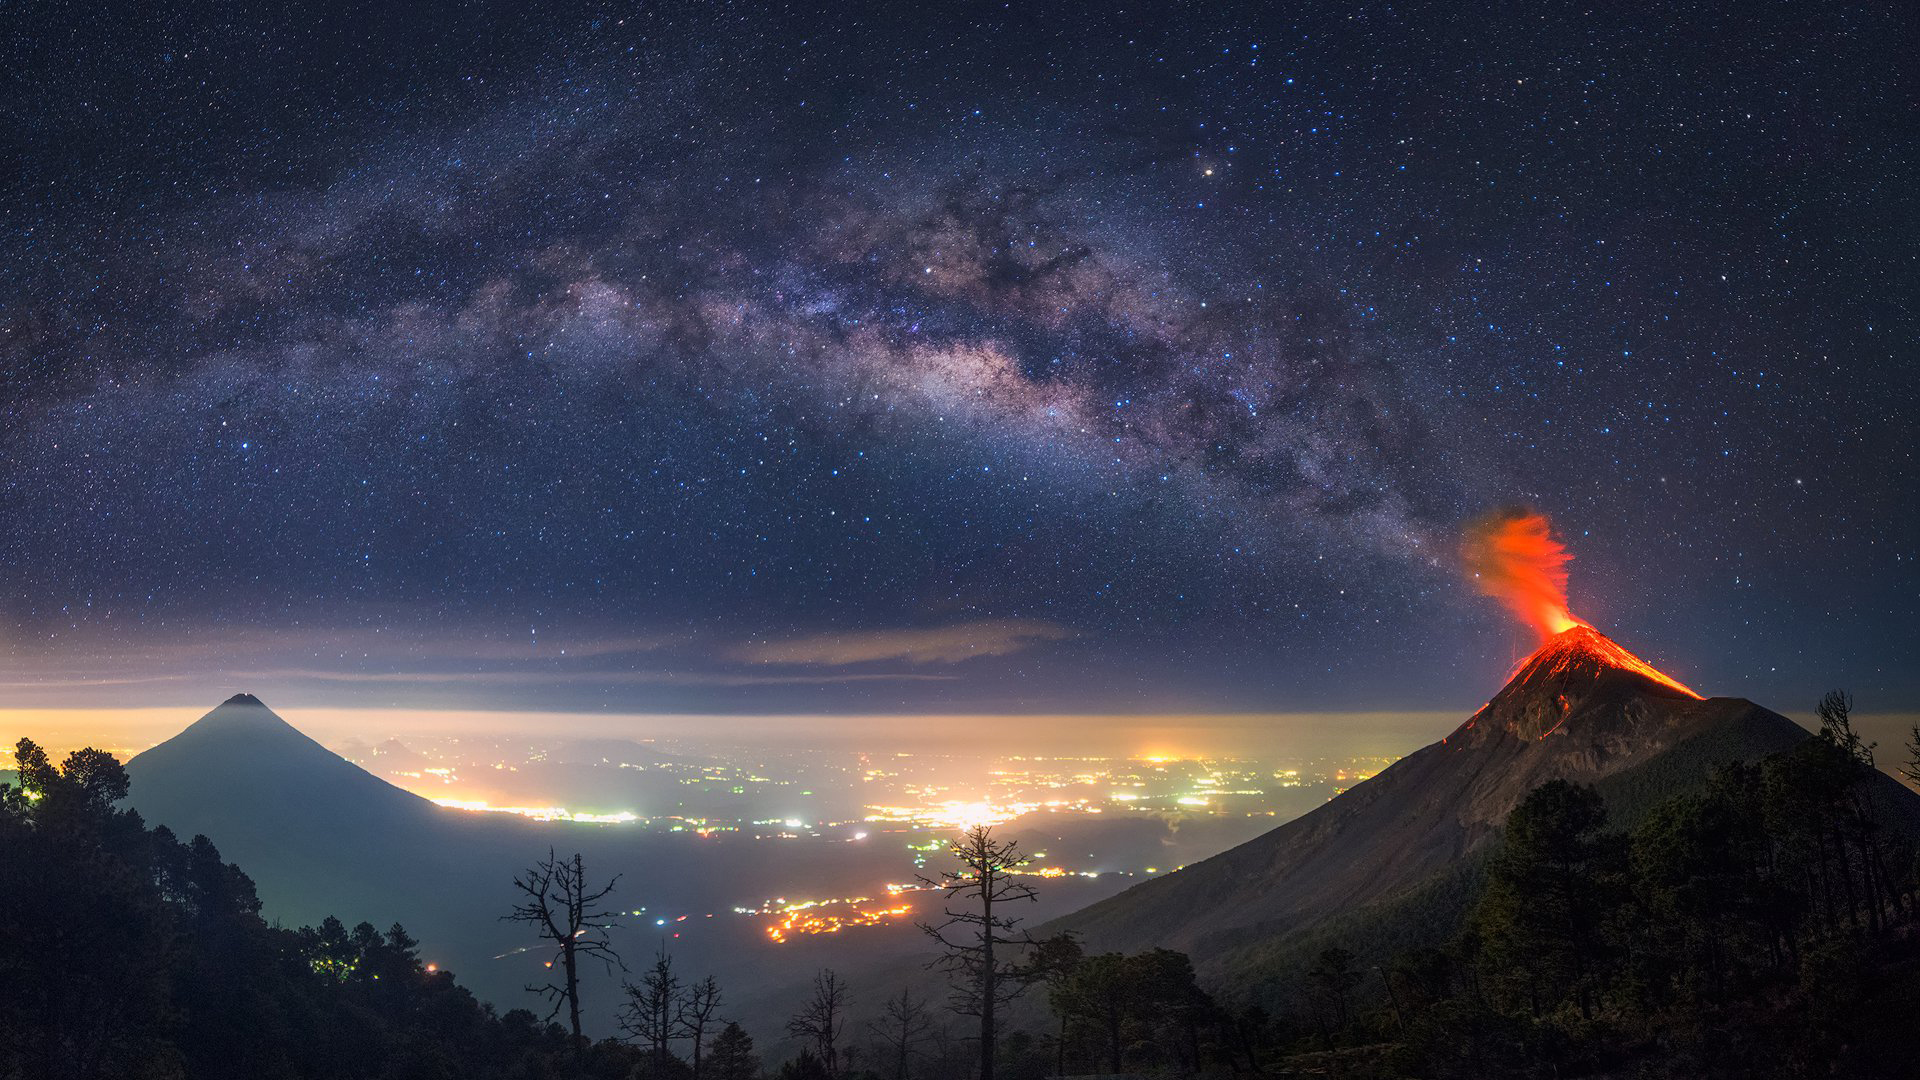 General 1920x1080 nature landscape trees forest Guatemala volcano eruption mountains Milky Way cityscape starry night long exposure lights horizon lava night